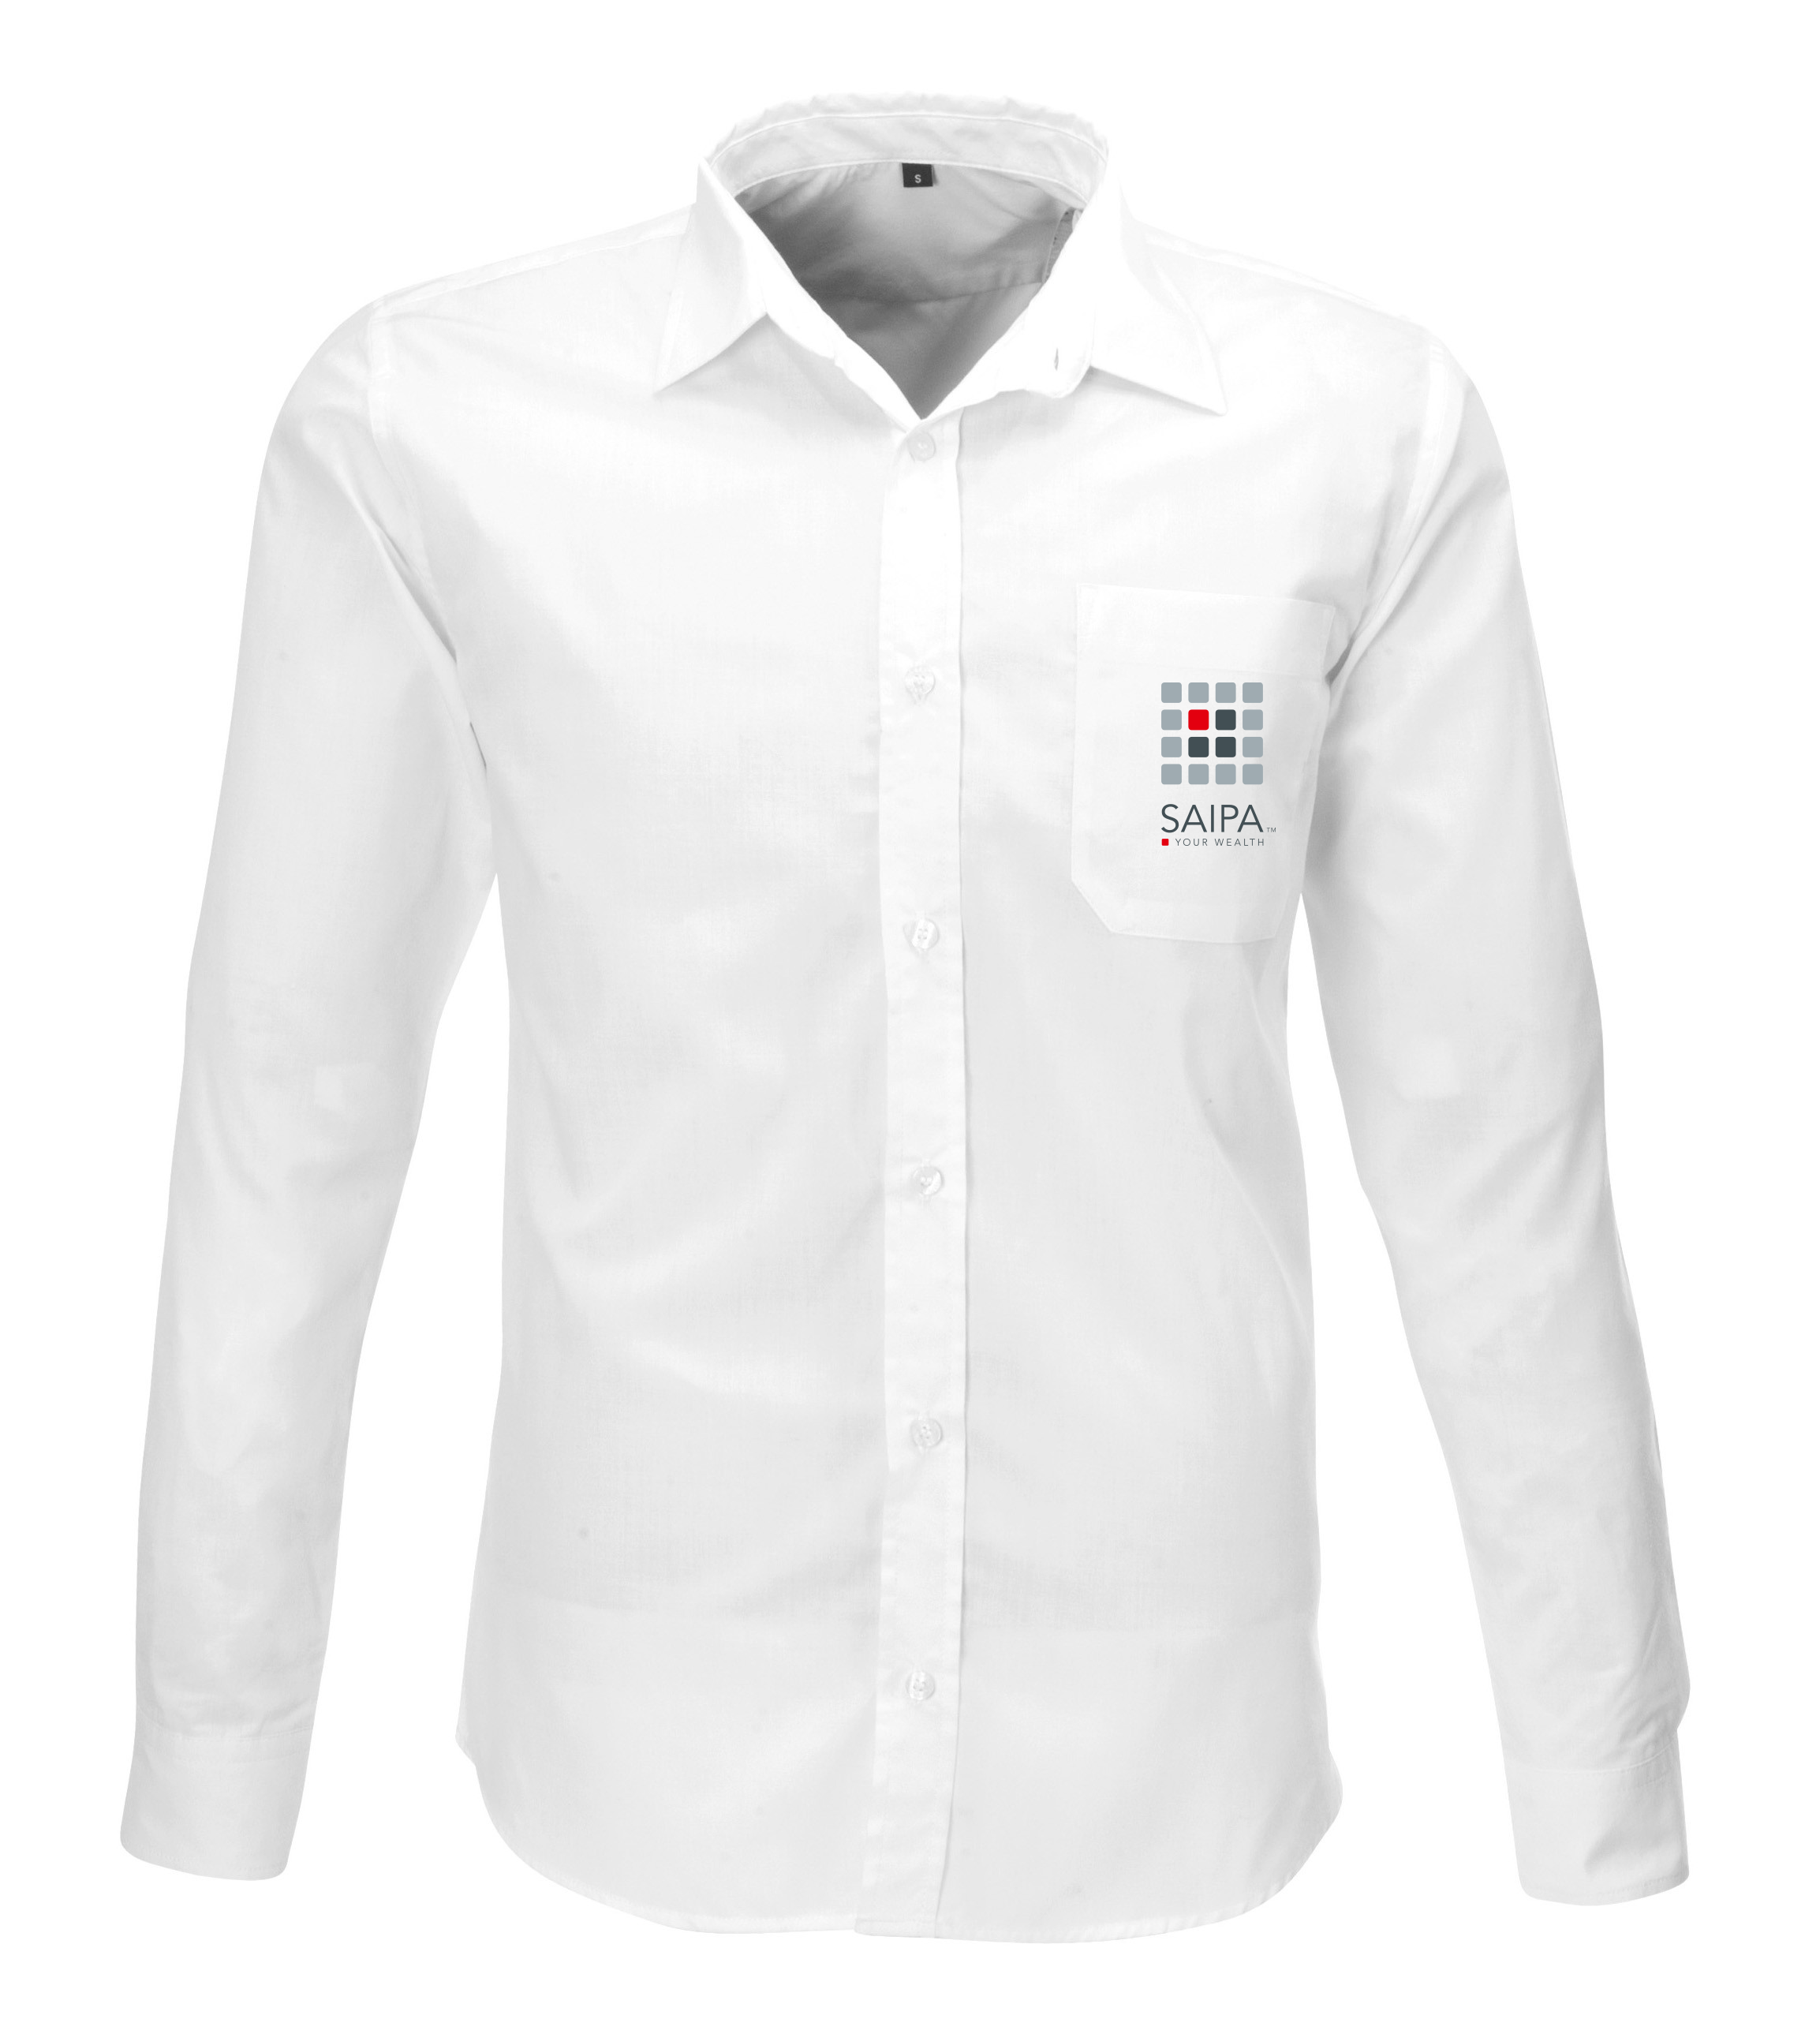 Long sleeve white shirt mens custom shirt Mens long sleeve white t shirt